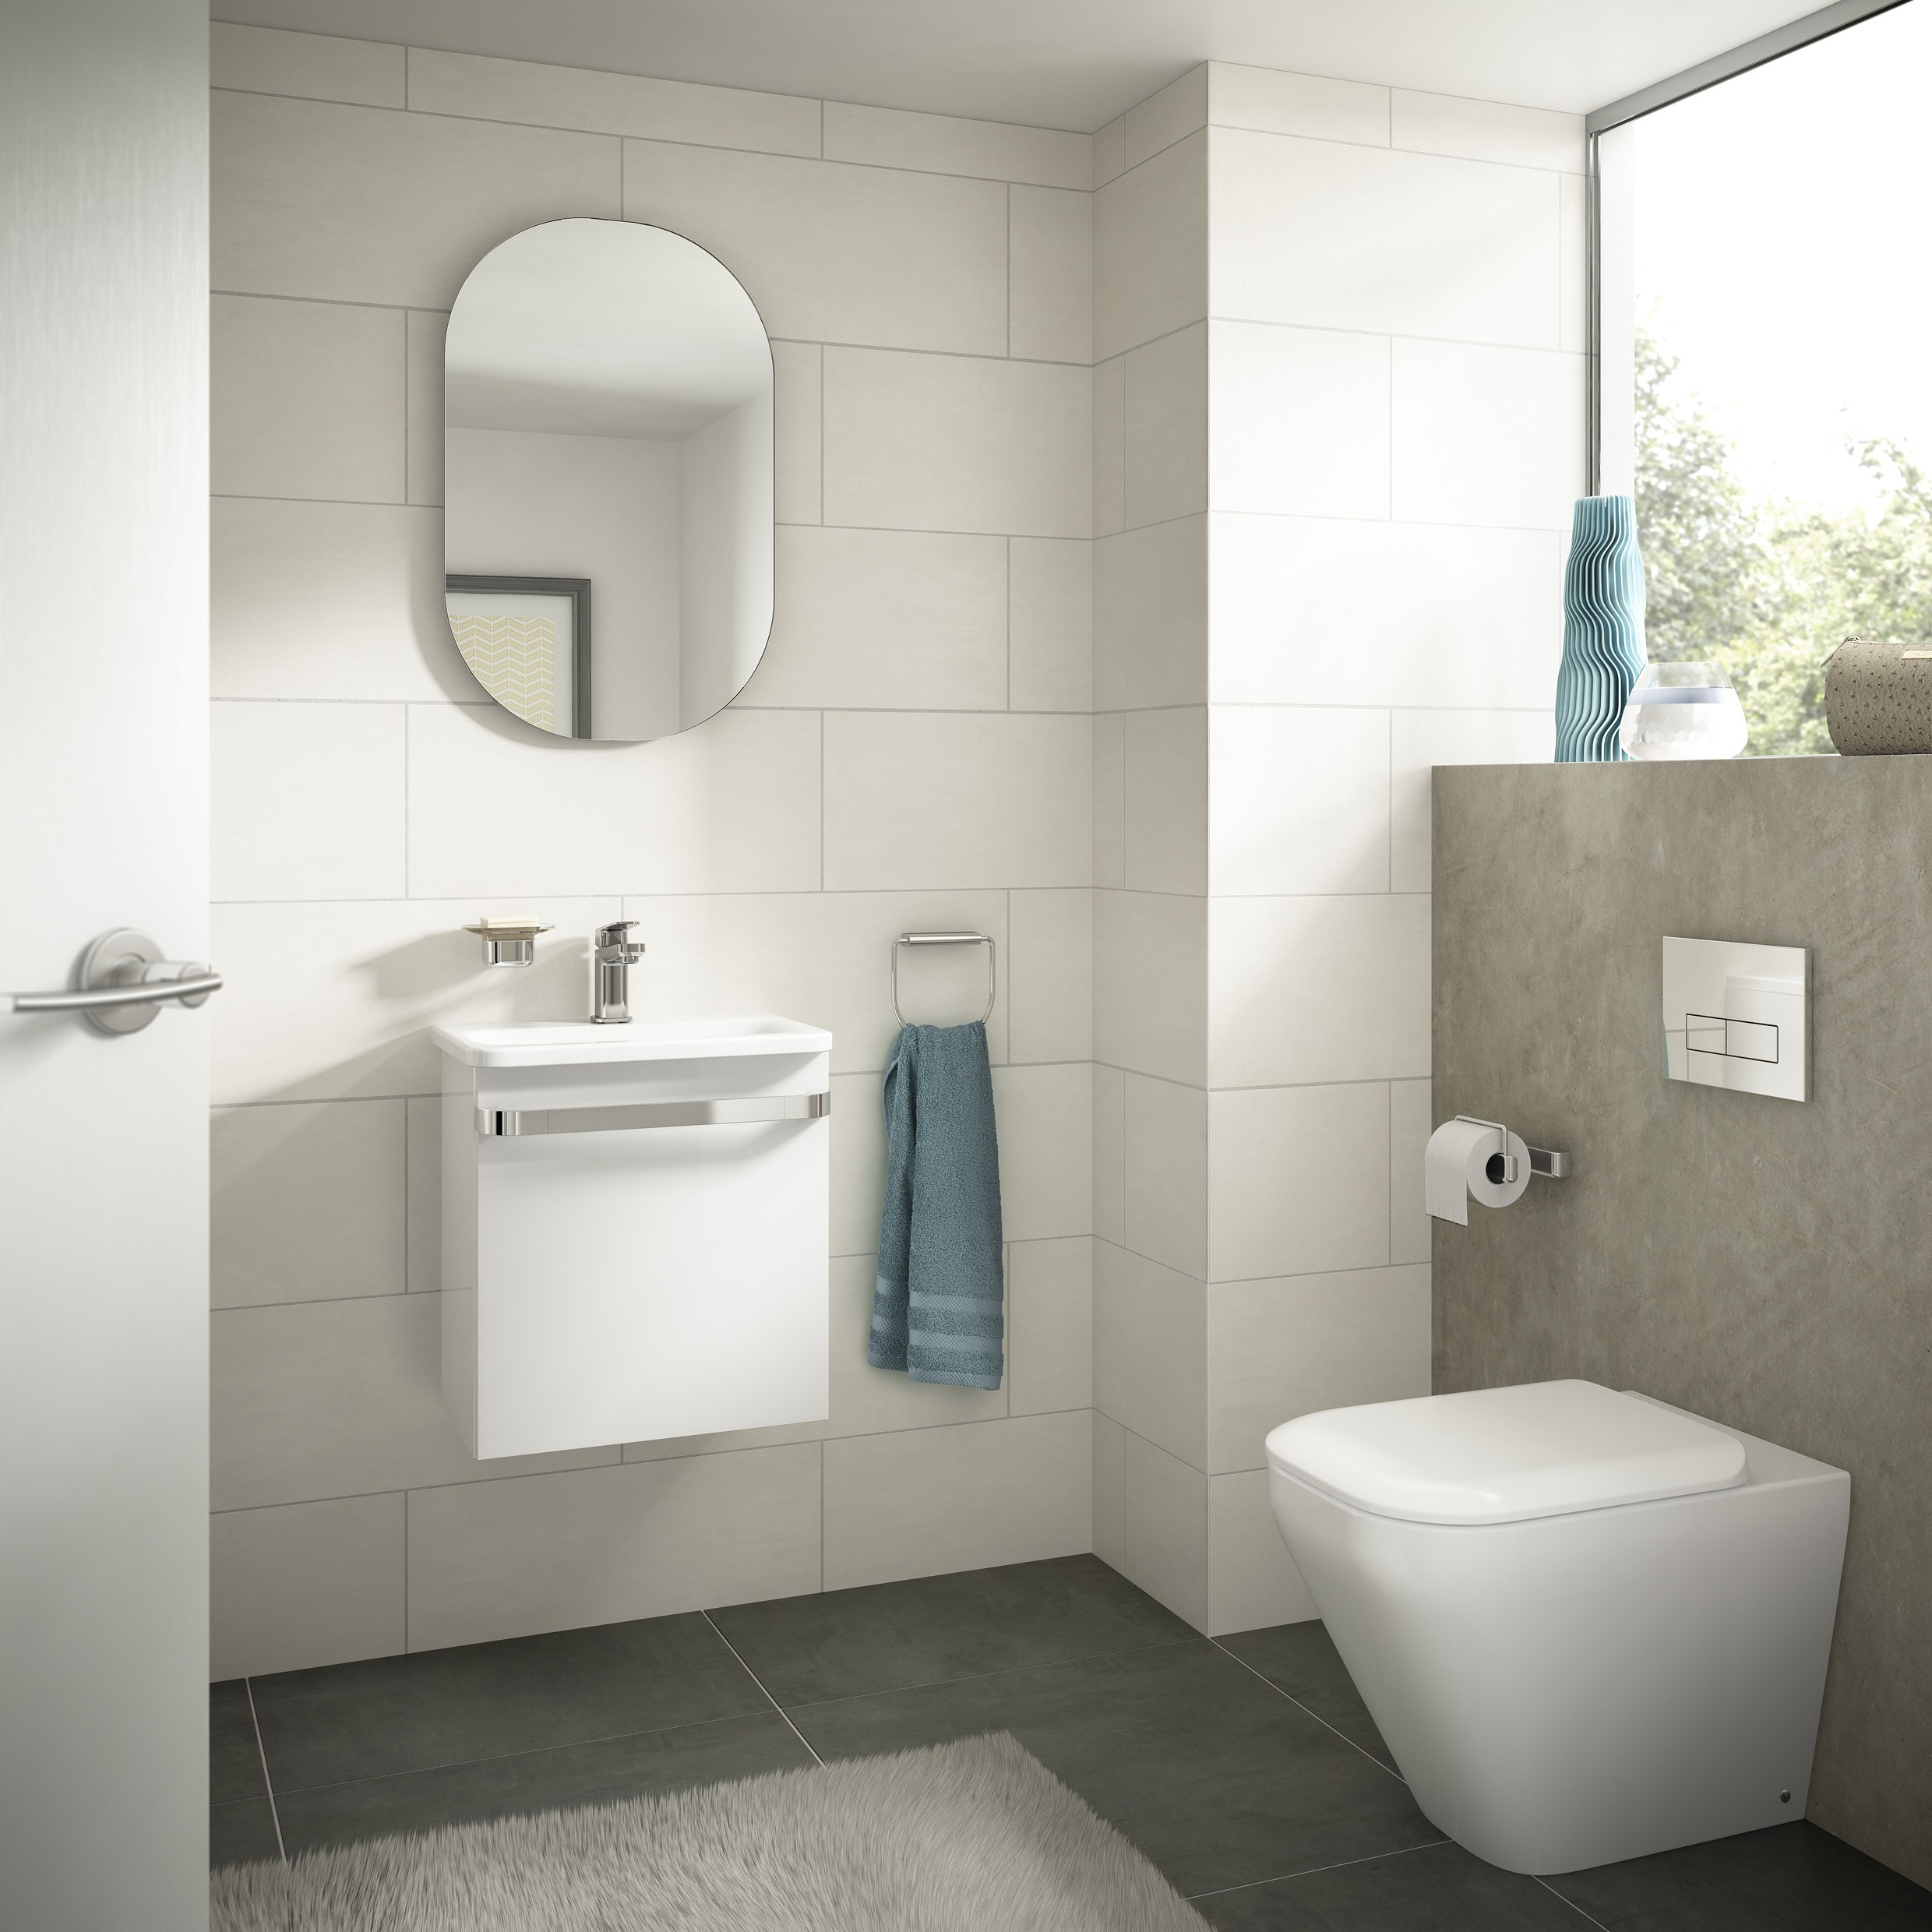 Arredo bagno completo tonic ii by ideal standard italia for Arredo bagno ideal standard